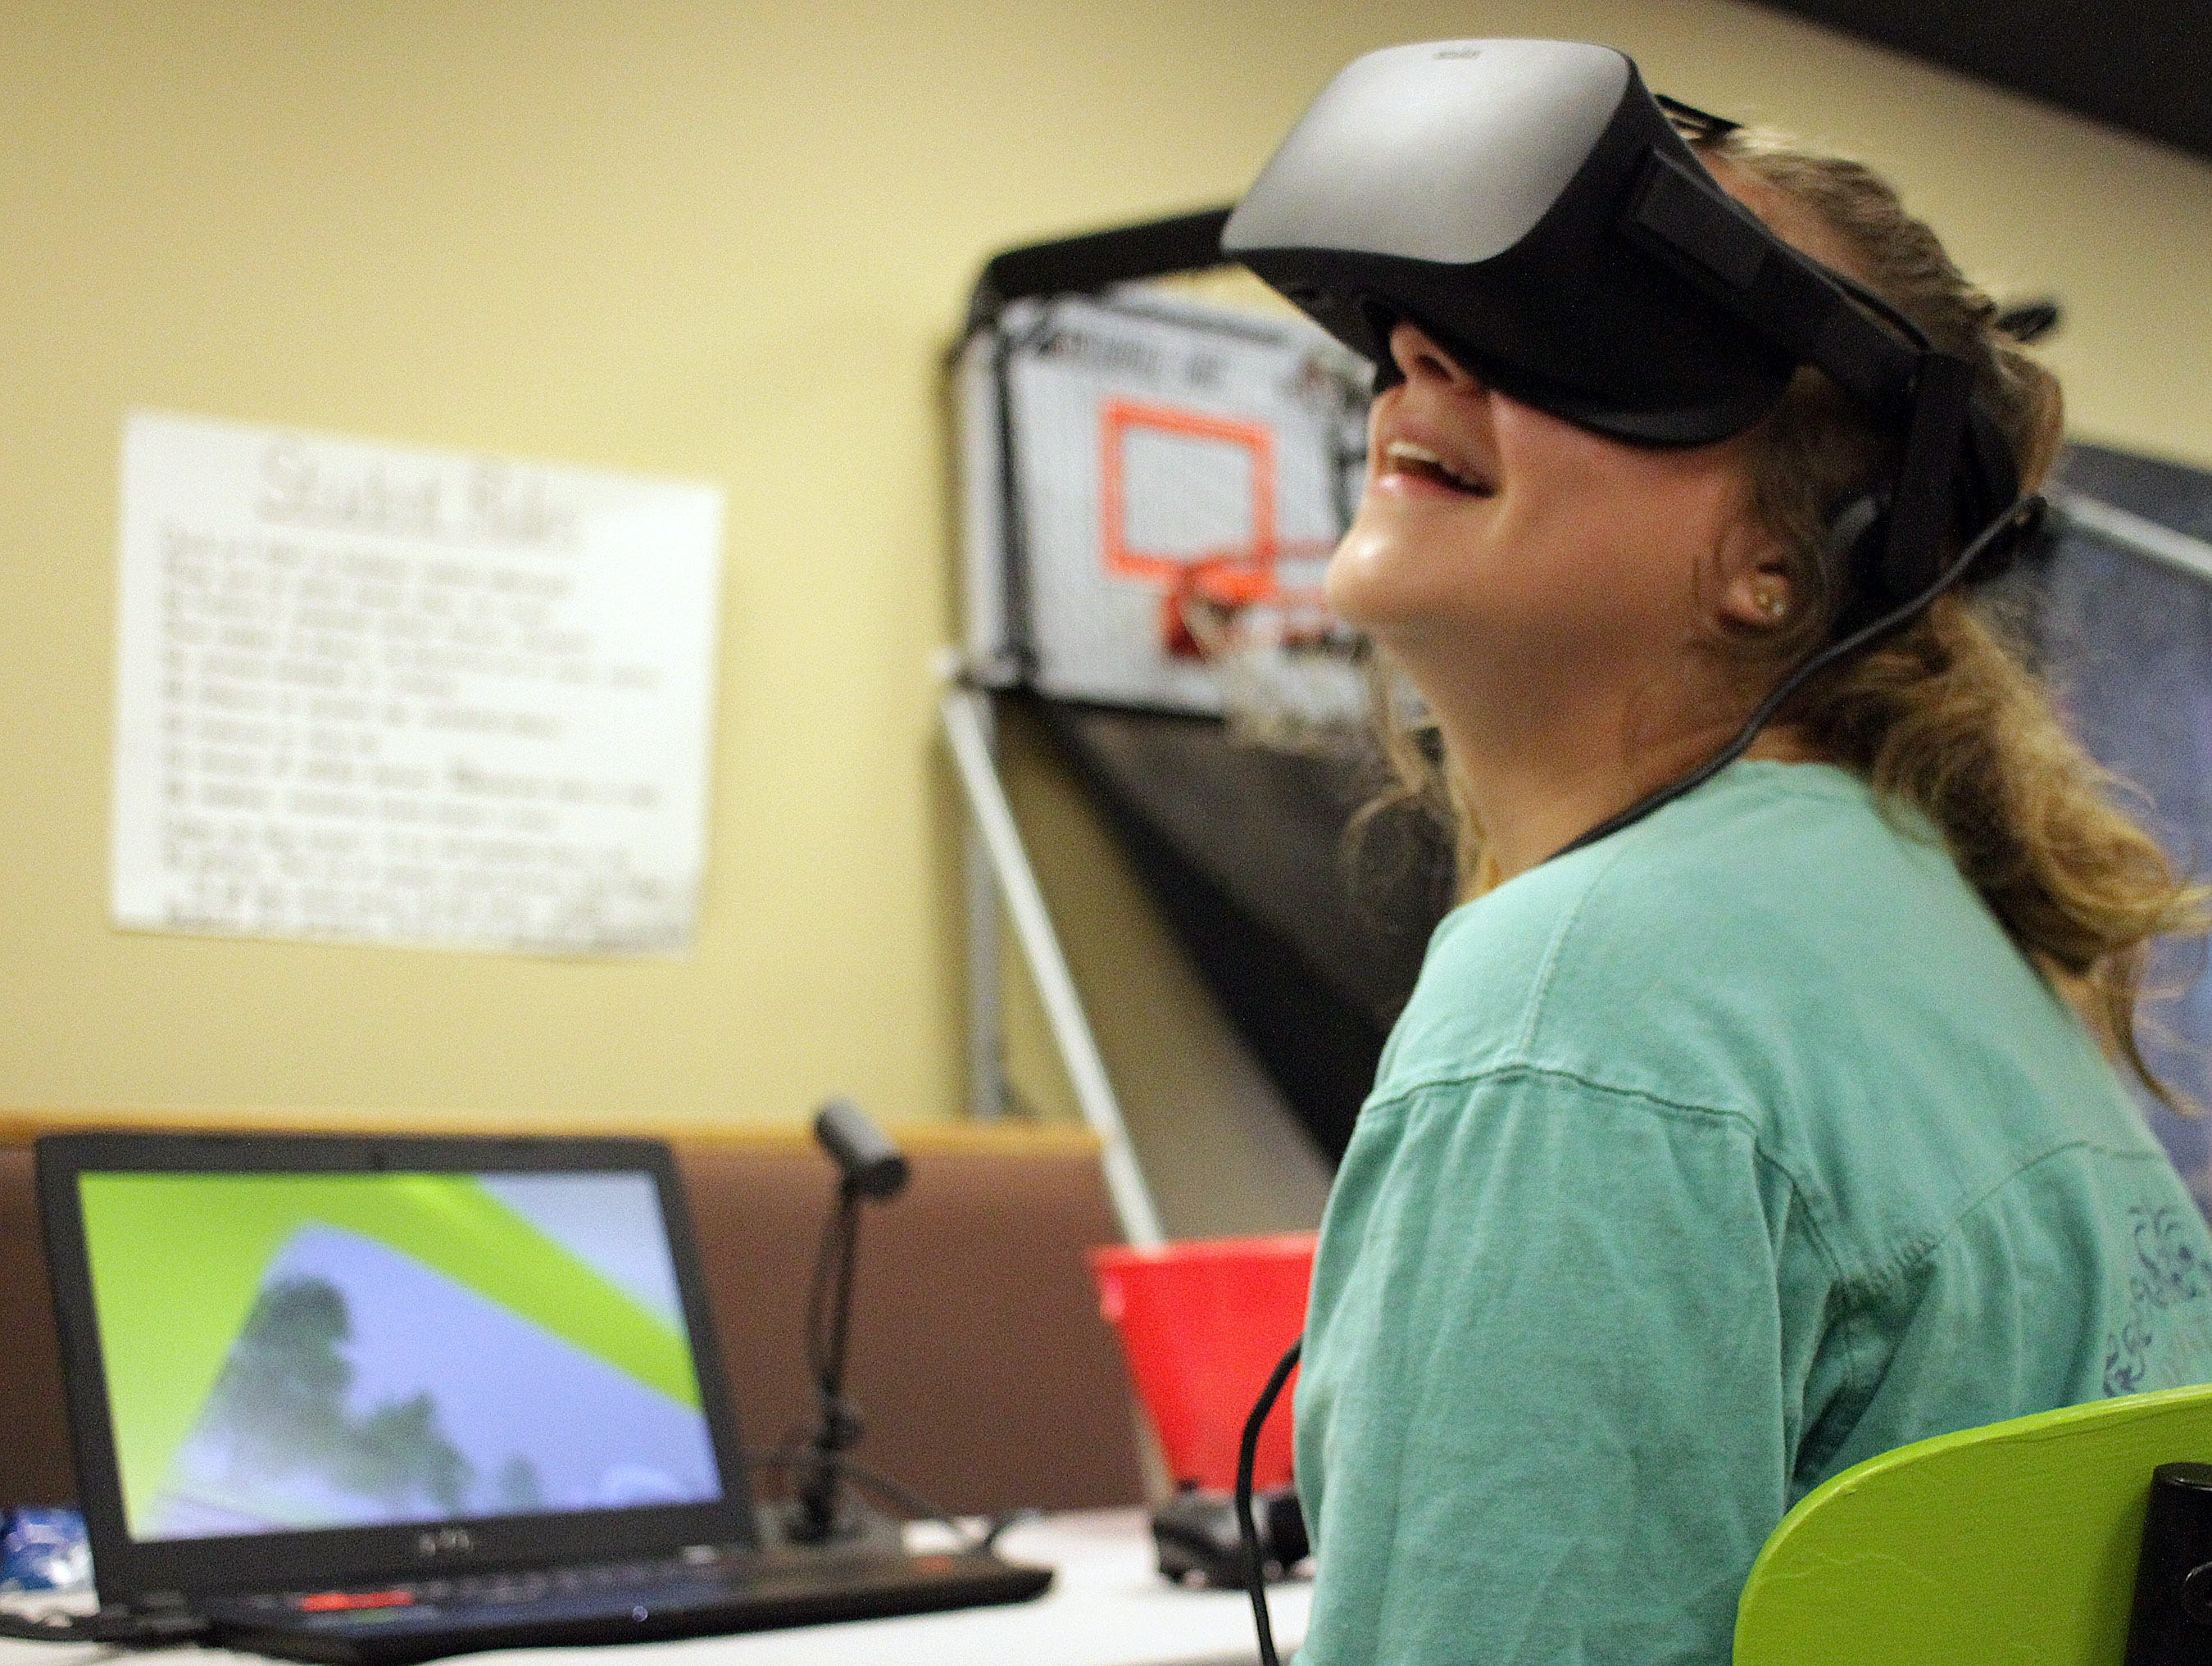 Emma Sanders uses virtual reality goggles for a truckers view at the wheel showing blind spots at the 4th Annual Teen Driver Safety Day in Gallatin, Tn on Saturday, March 2, 2019.